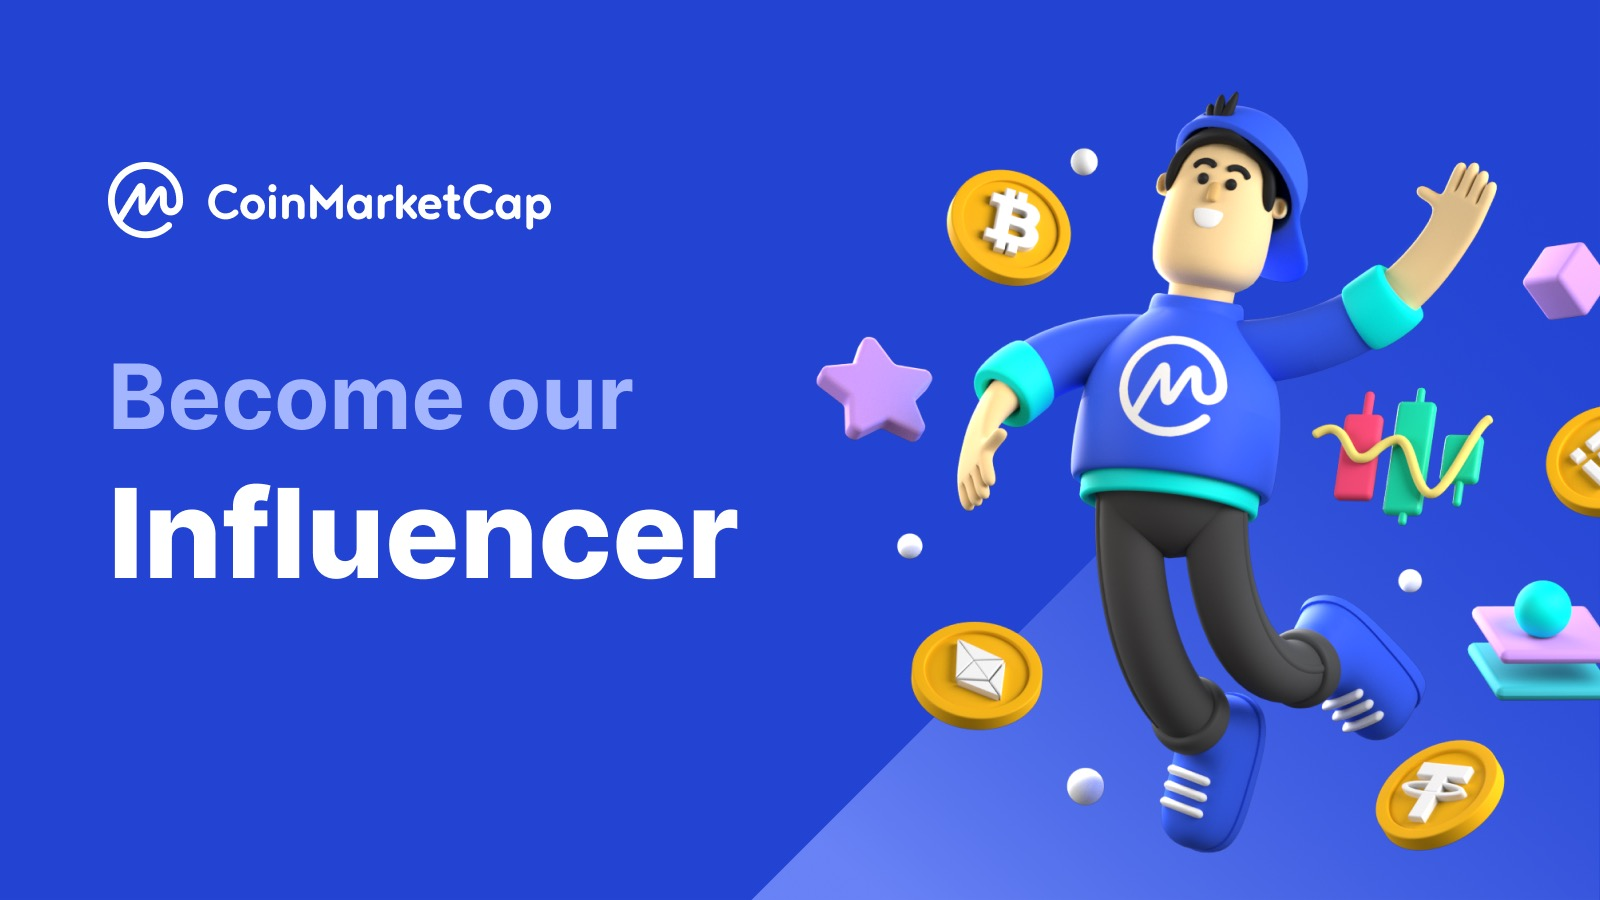 CoinMarketCap APAC Influencer(KOL) Content Policy: Multi-Lingual